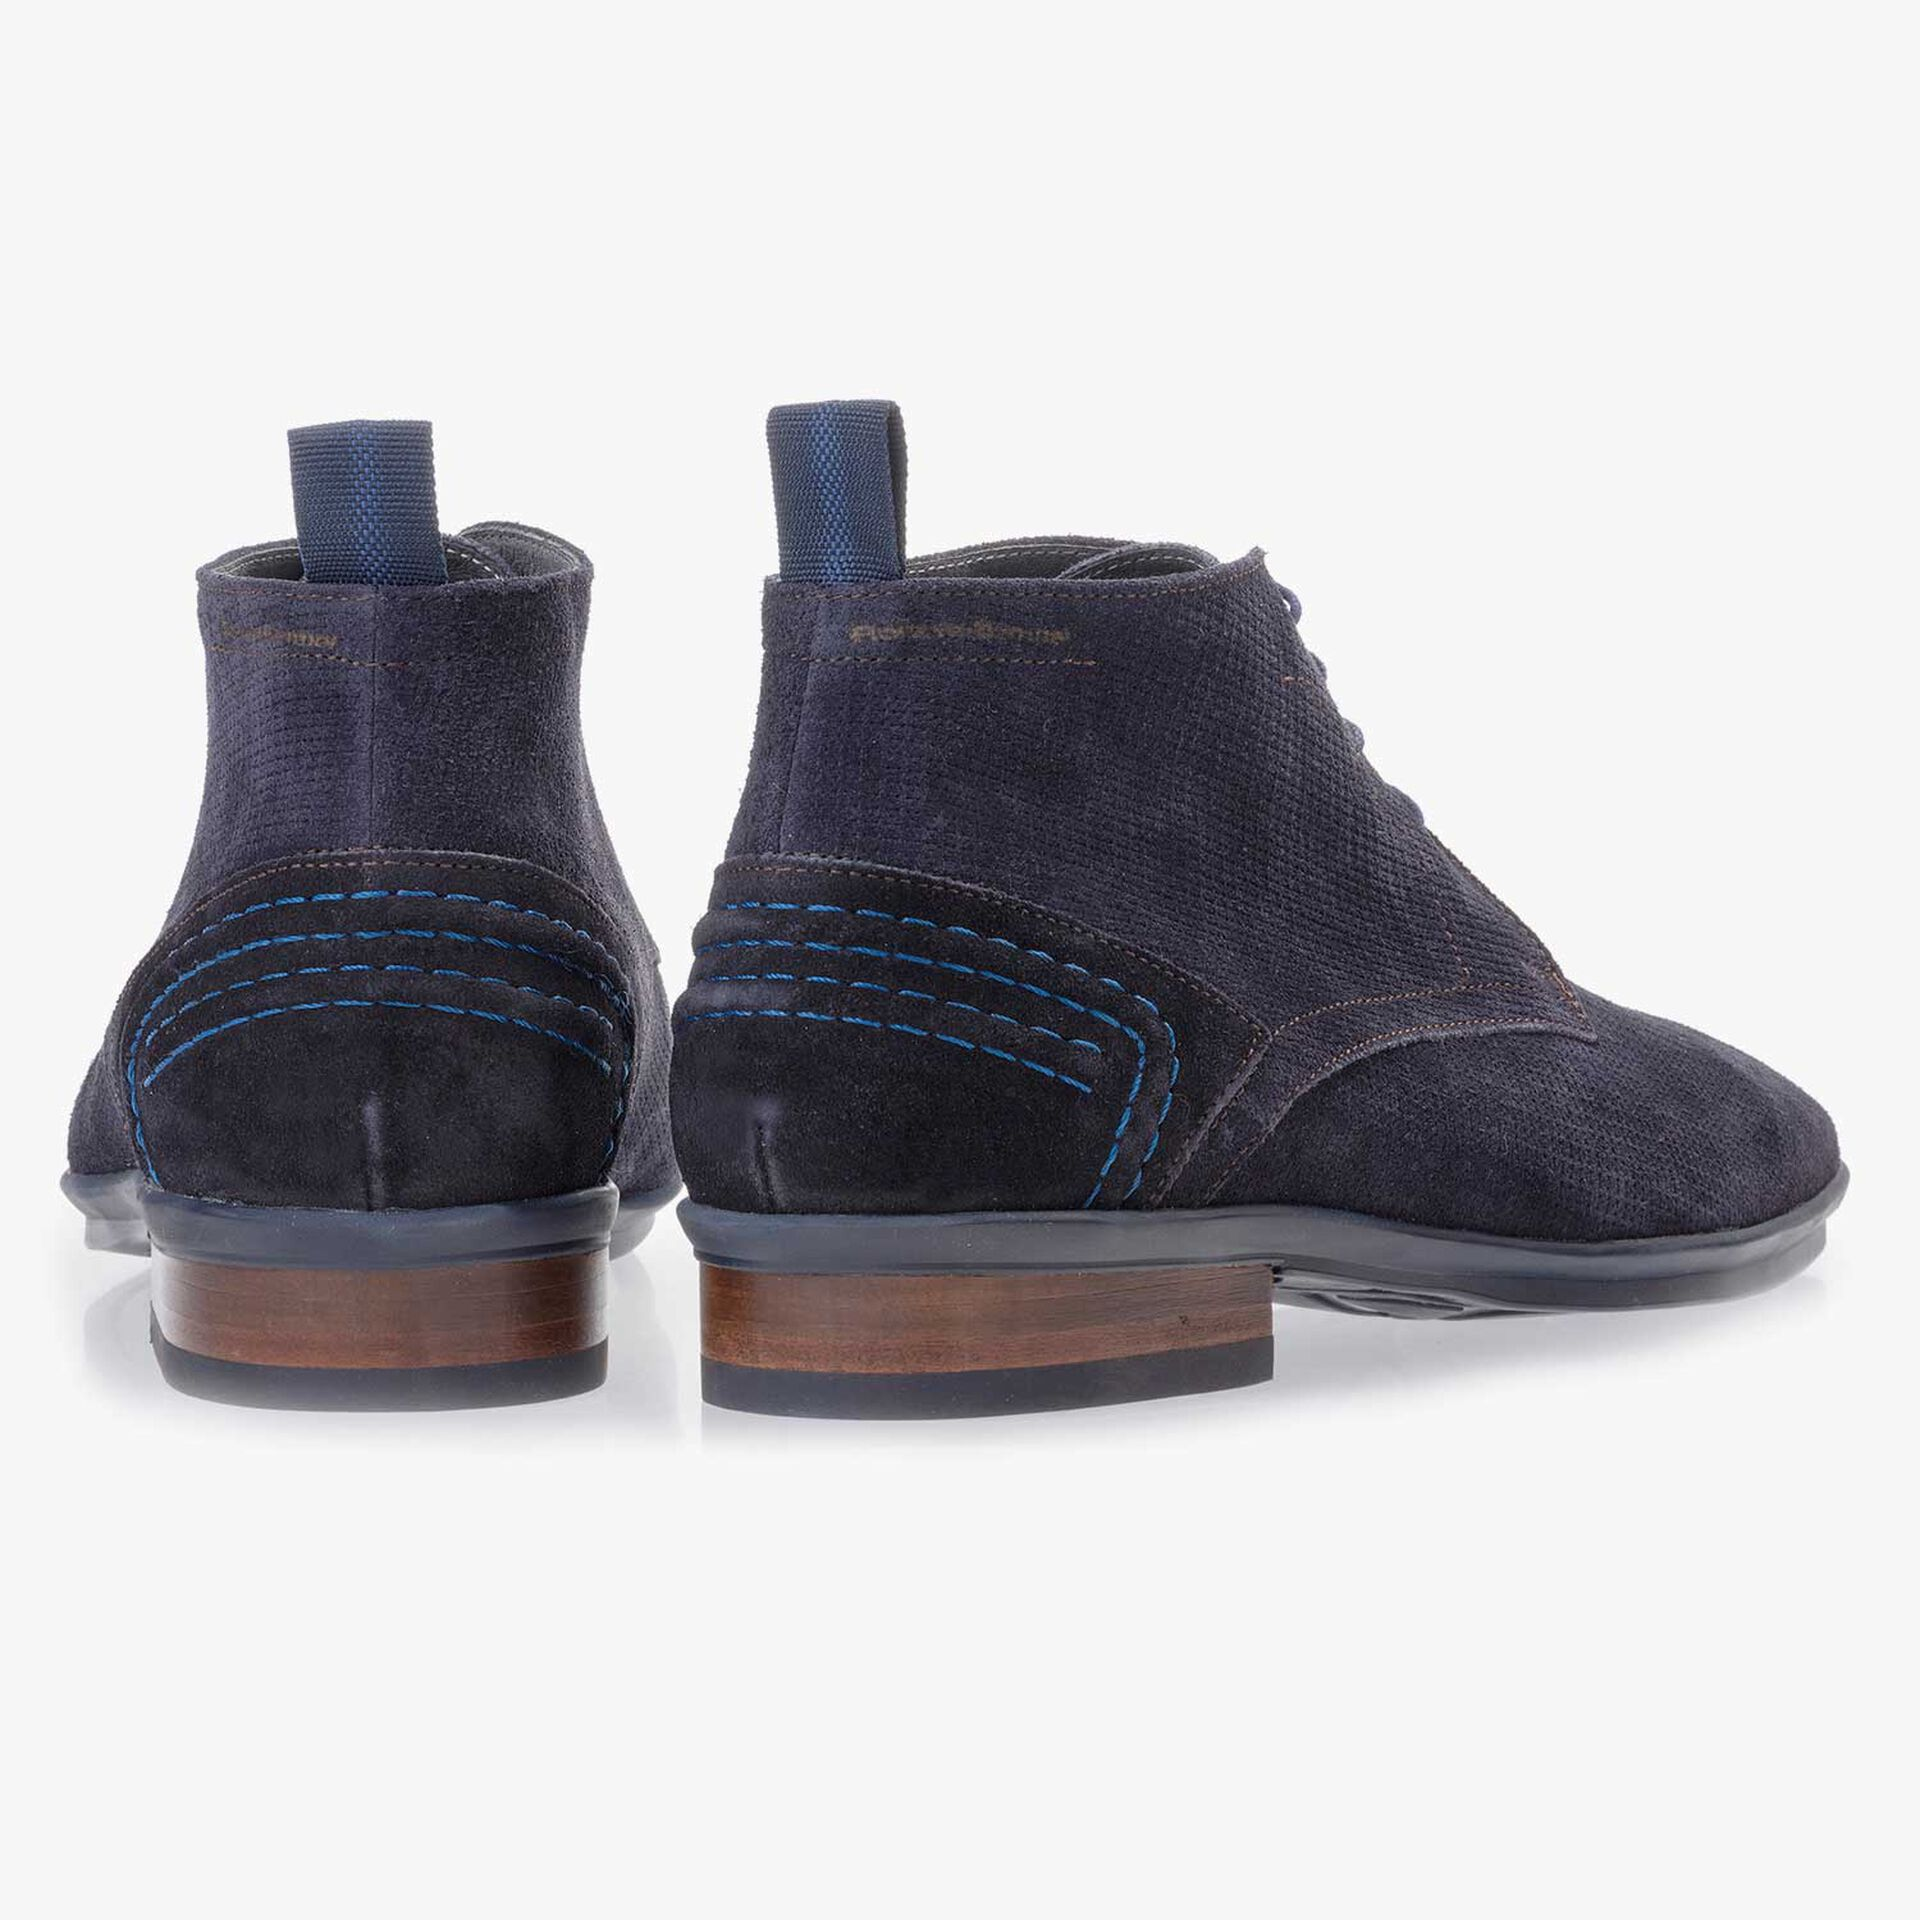 Blue suede leather lace boot with pattern